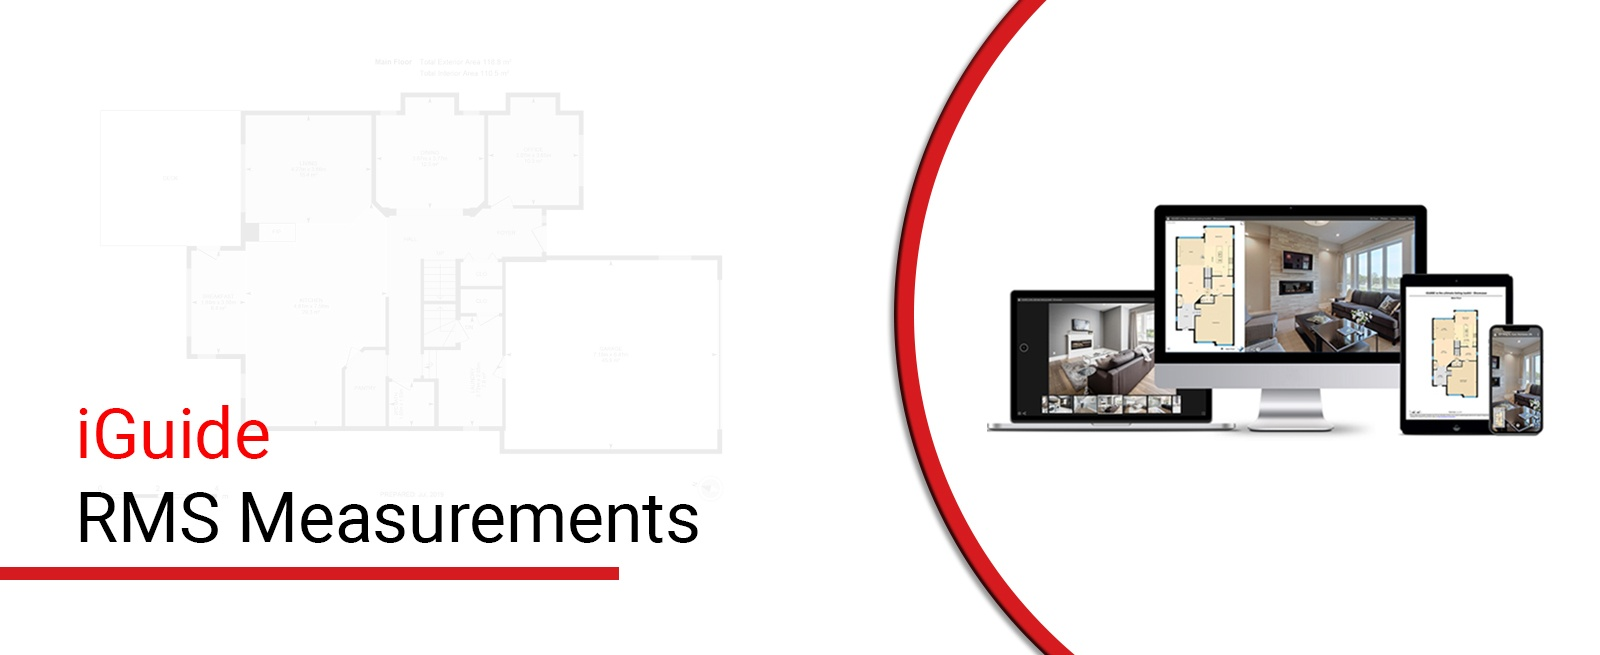 iGuide RMS Measurements - Square Feet Photography and Floor Plans